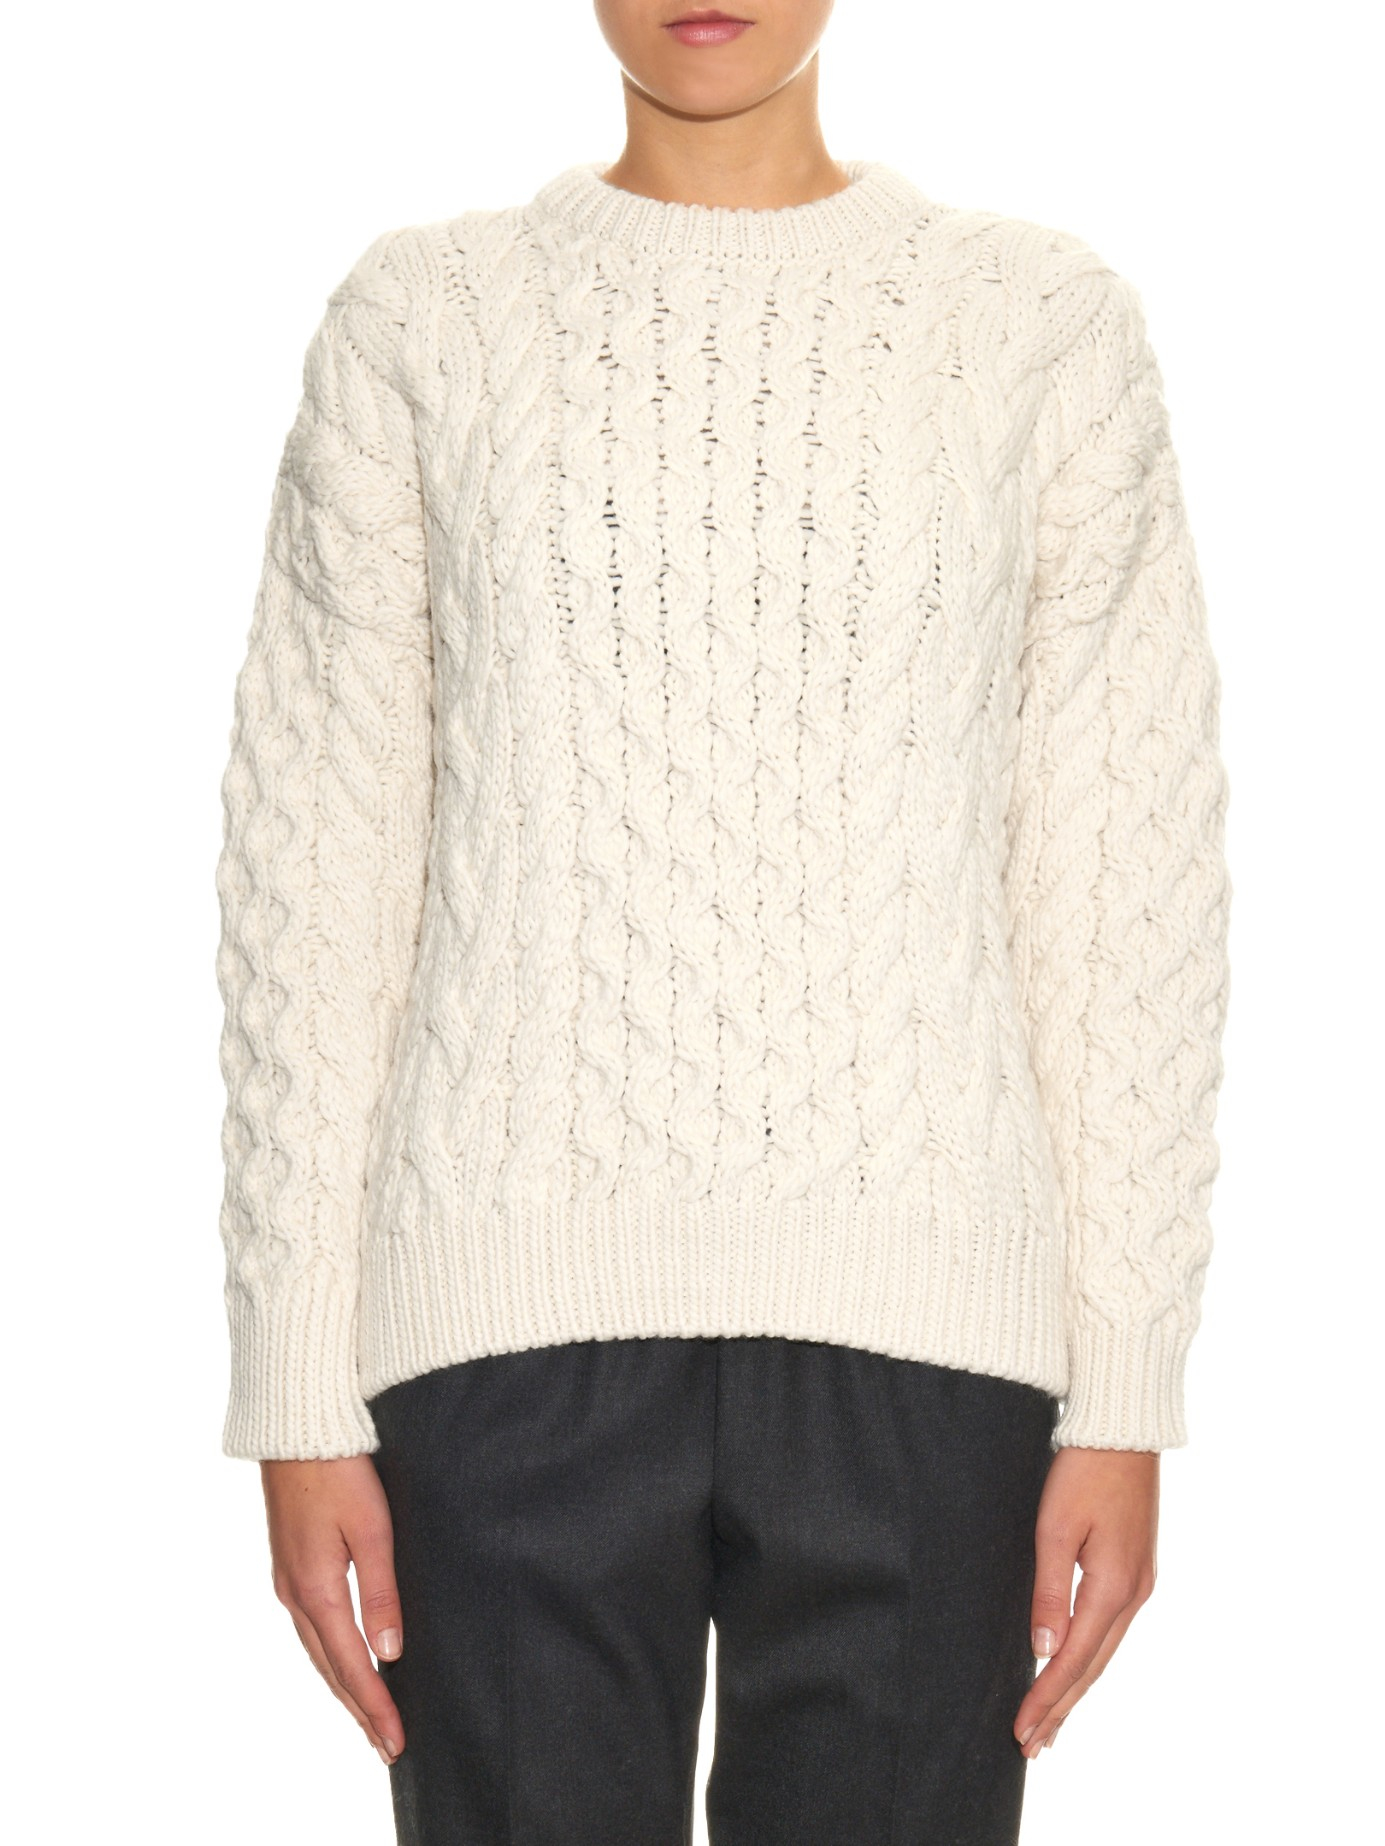 Joseph Chunky Cable-knit Wool Sweater in White | Lyst